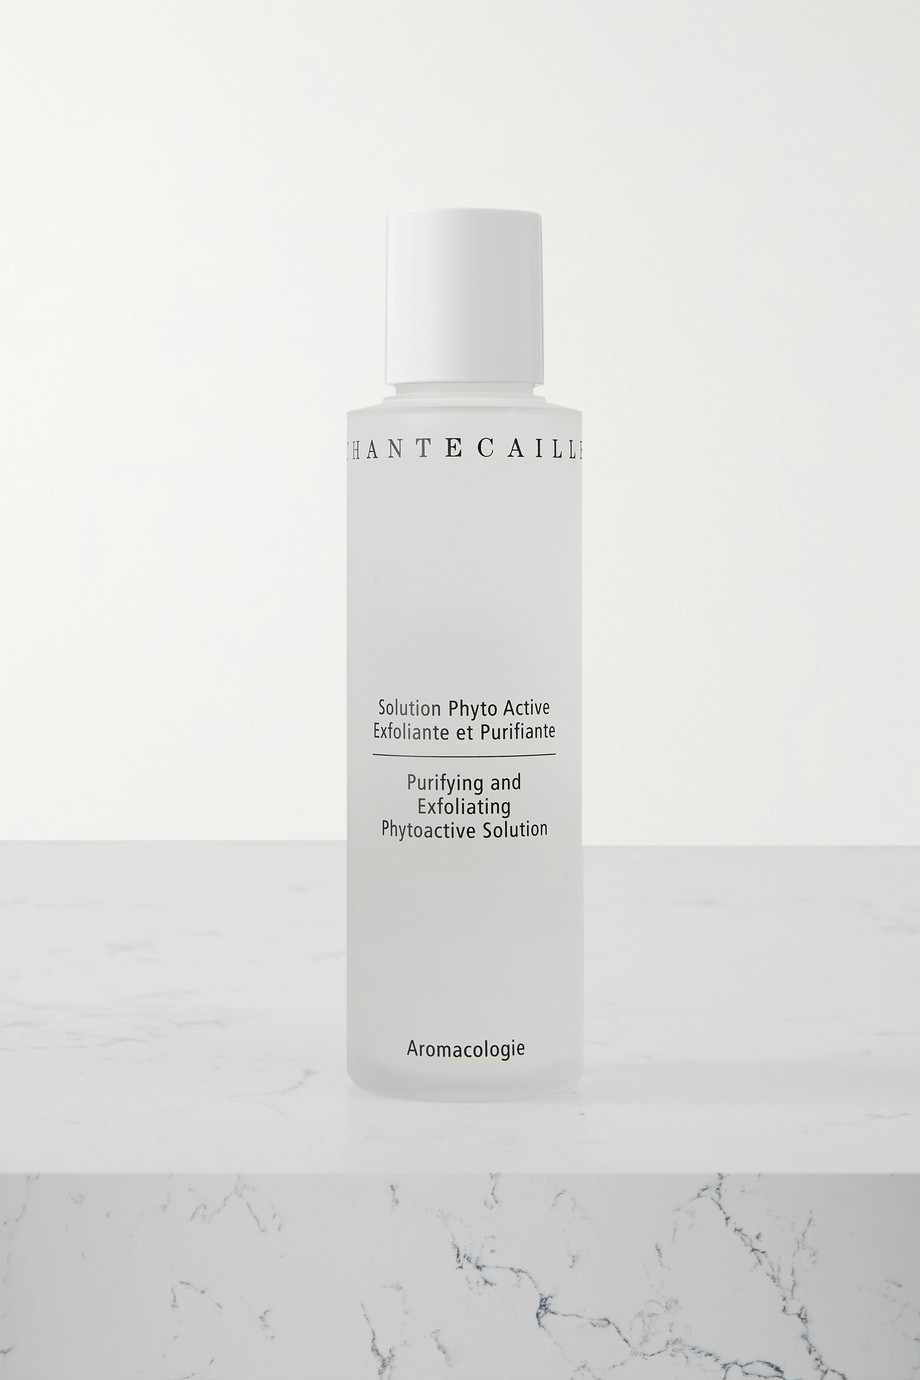 Chantecaille Purifying and Exfoliating Phytoactive Solution, 100ml